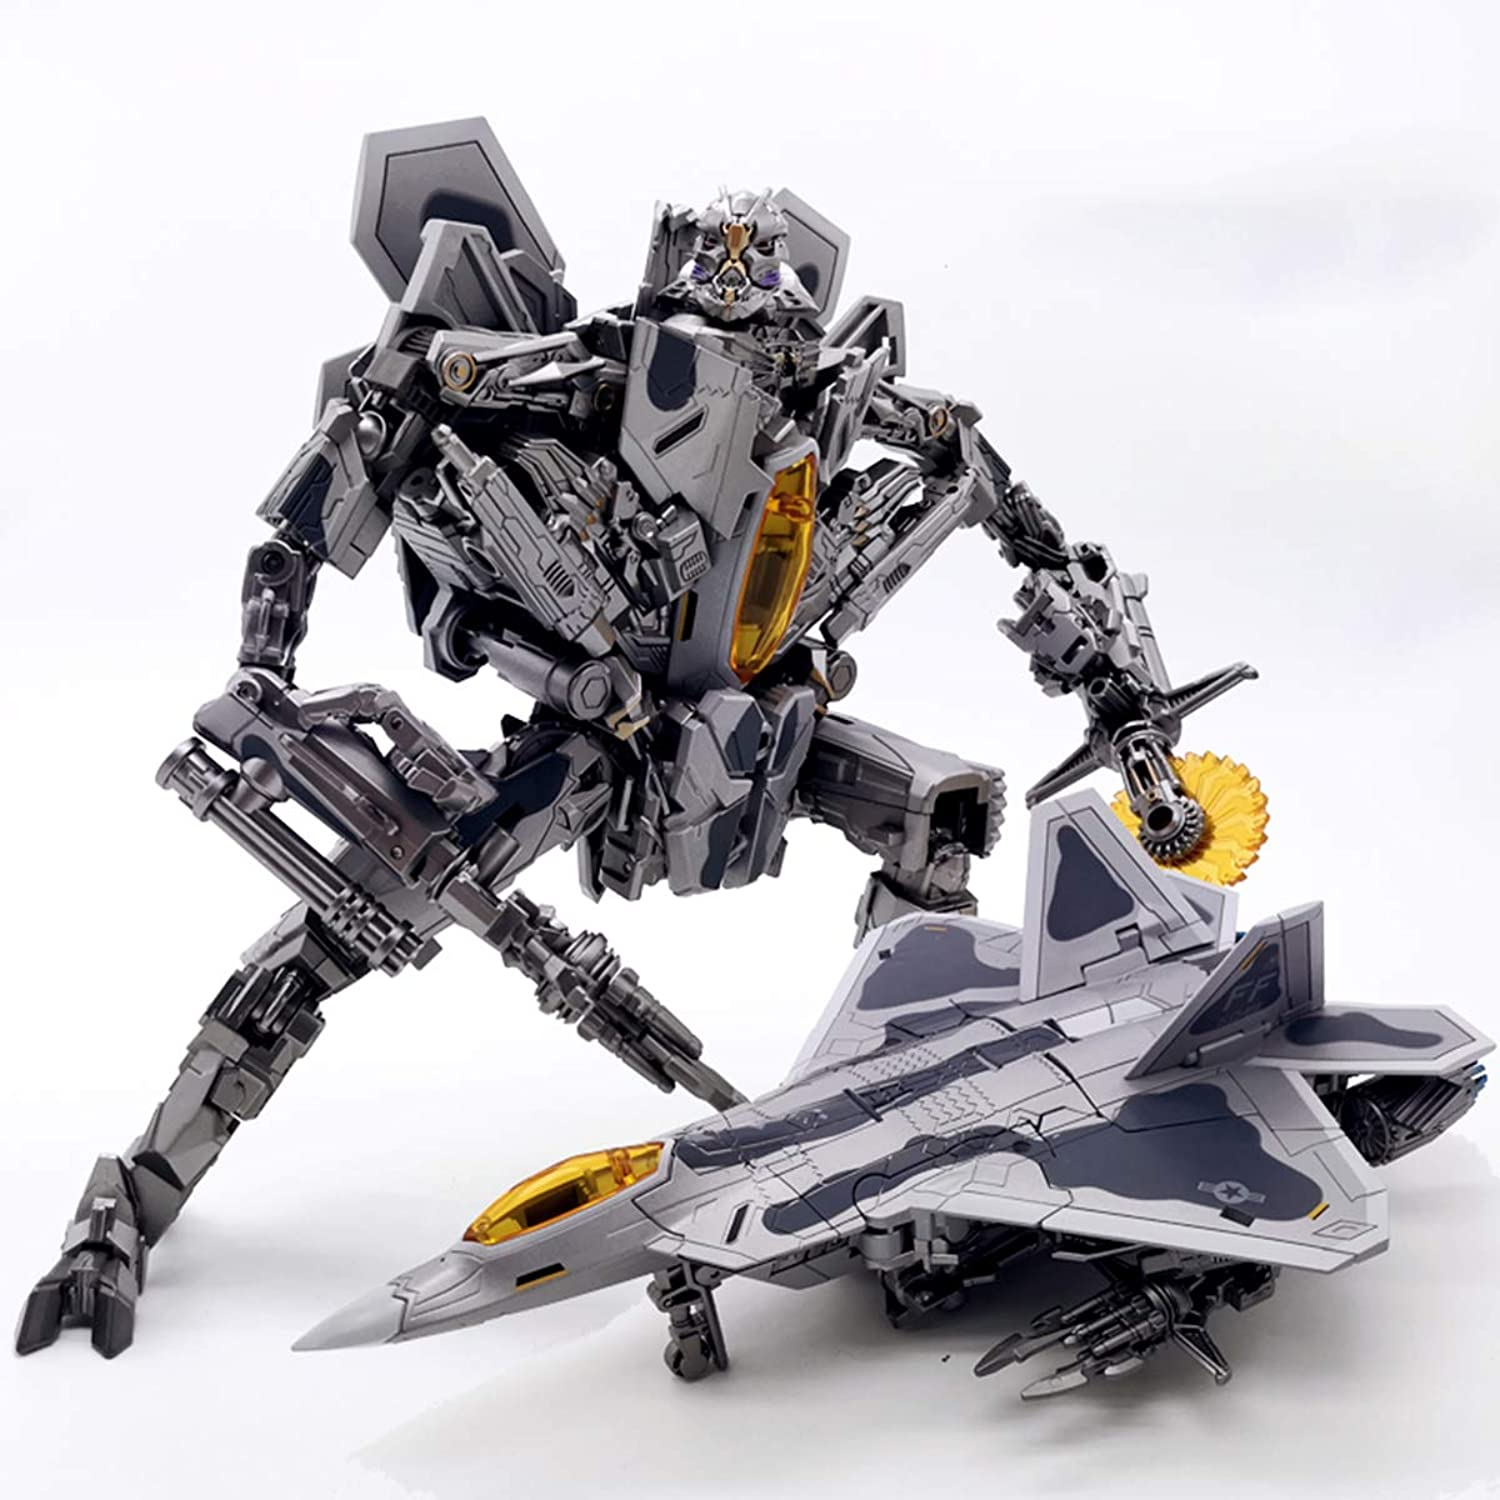 Transformer Movie 5 Star Ancestral LS04 Red Spider SS Zoom Plane PVC Action Figure Model Robot Toys